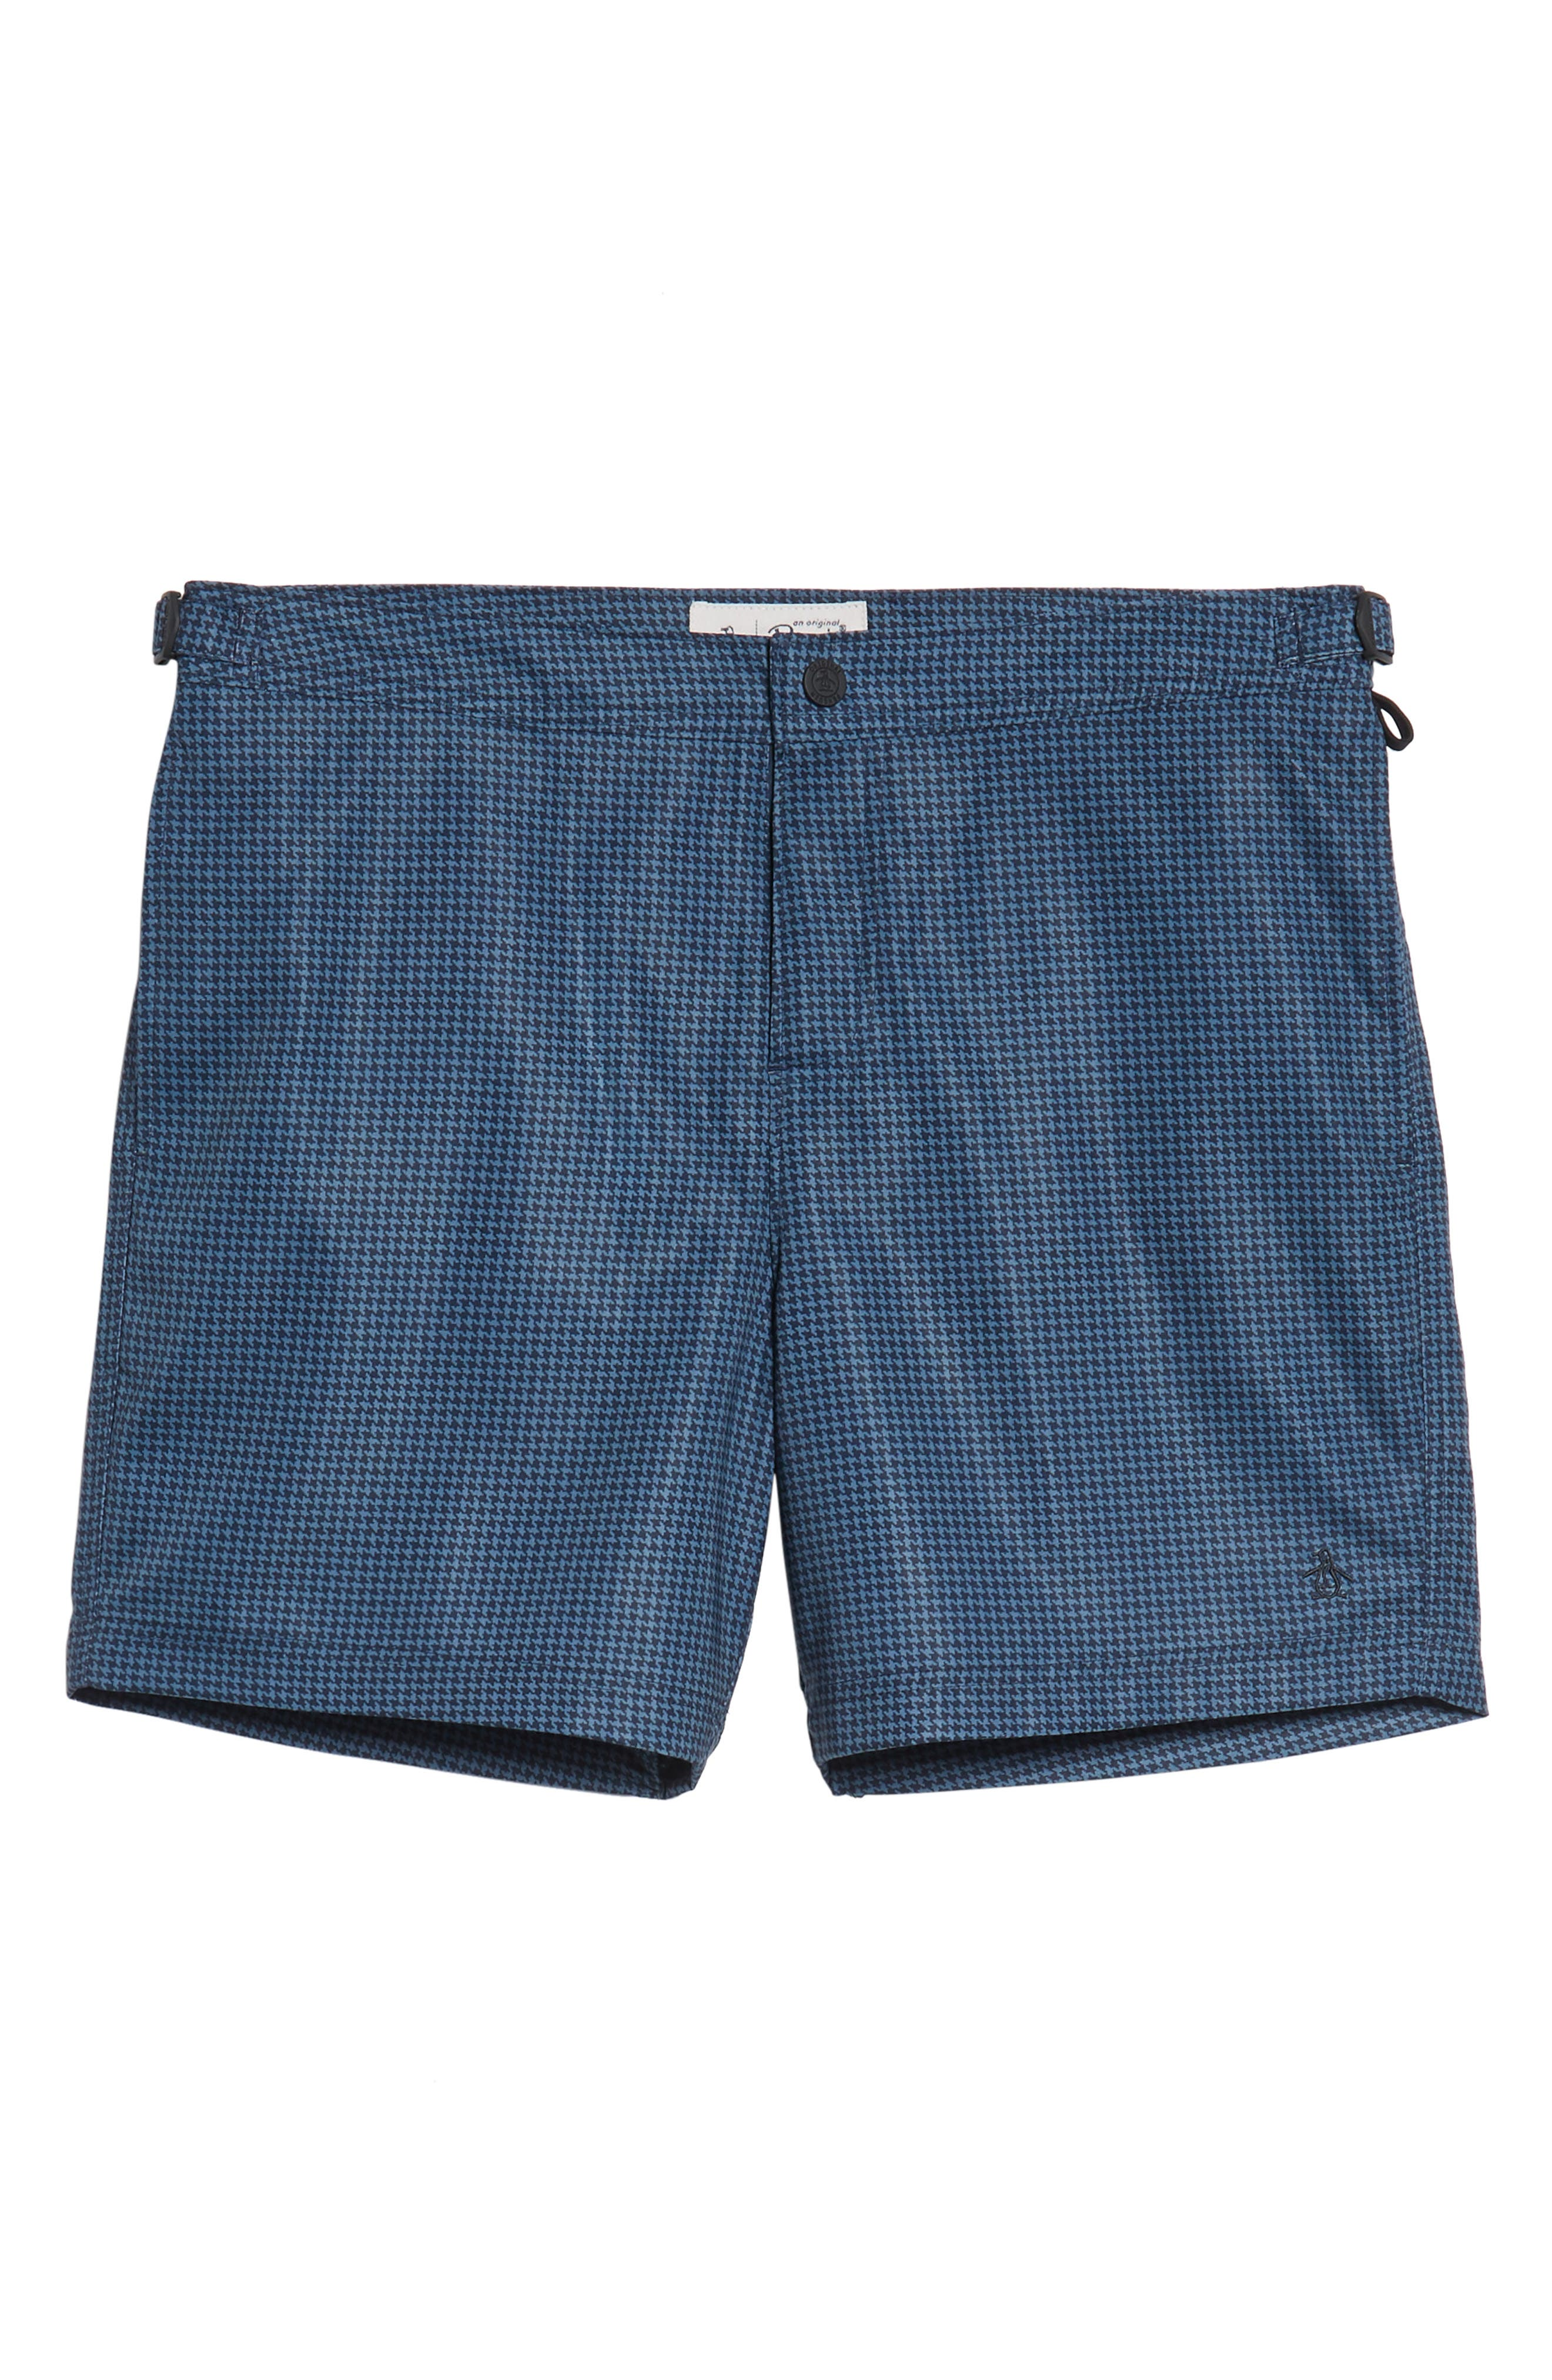 Houndstooth Stretch Volley Board Shorts,                             Alternate thumbnail 6, color,                             Dark Sapphire